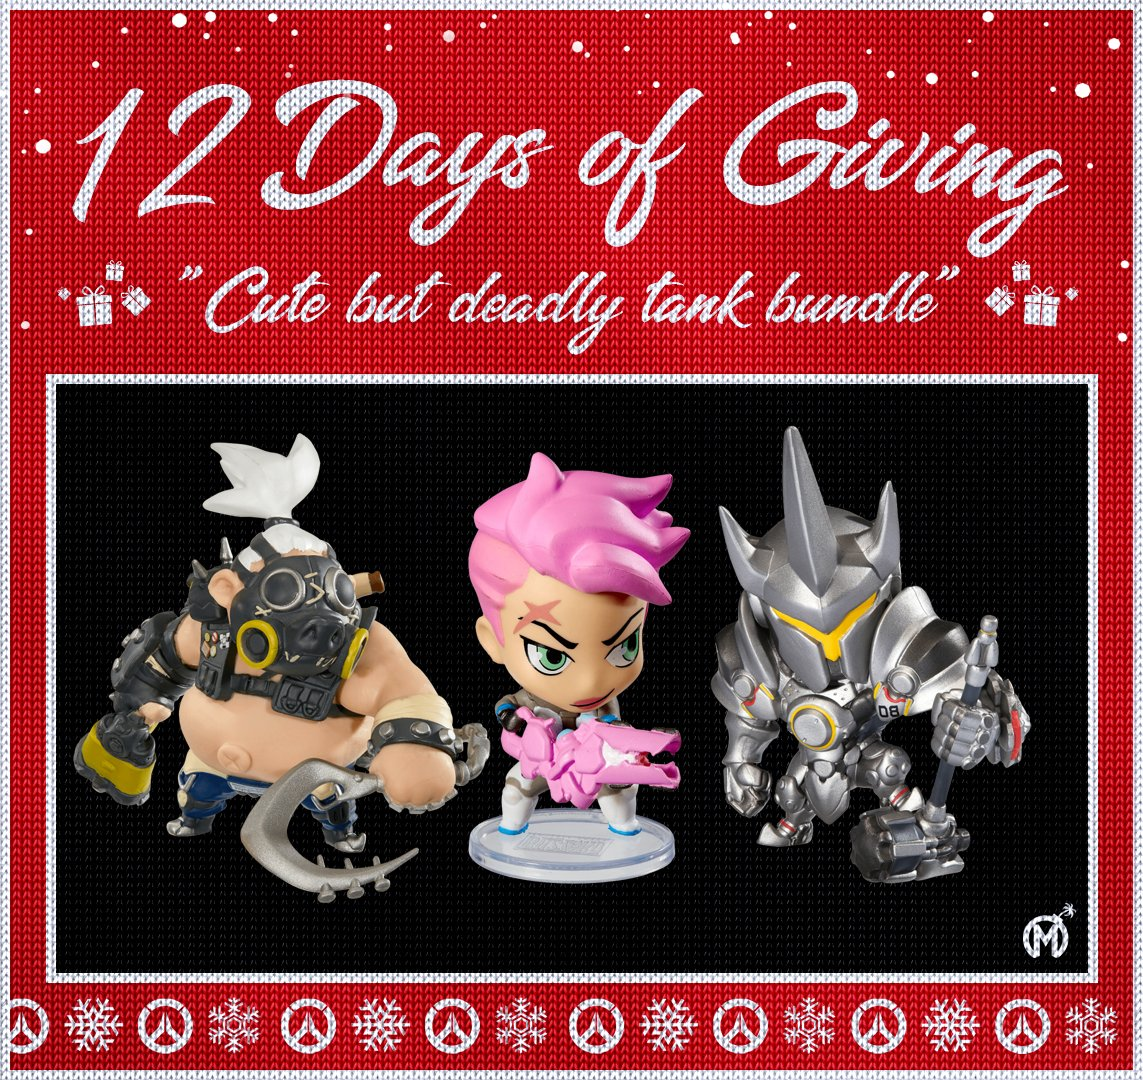 12 Days of Giving! Starting today, we'll be giving away @PlayOverwatch prize bundles for the next 12 days.  How to enter:  🎁 RT each day's tweet 🎁 Follow 🎁 Use daily hashtag (today's is #CuteButDeadly)  Daily winner's will be notified via DM at 11:59 PM PST! 🎄